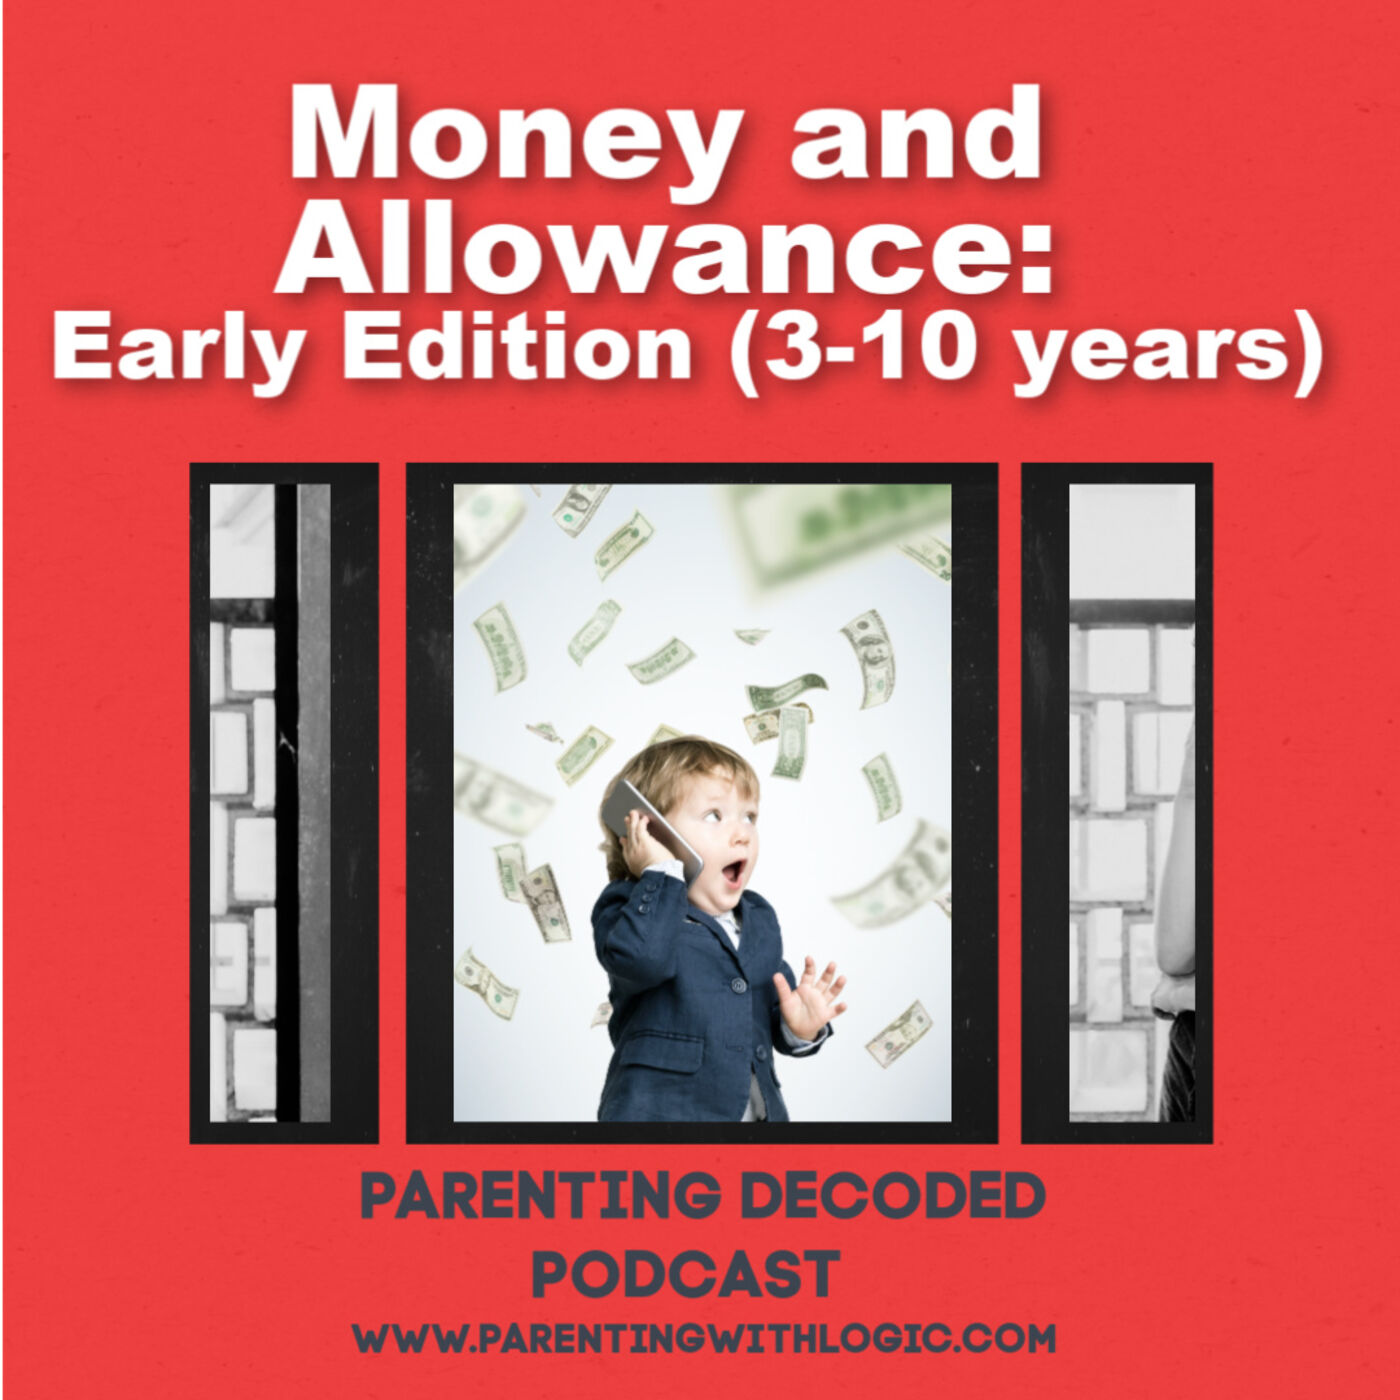 15 - Money and Allowance: Early Childhood Edition (3-10)